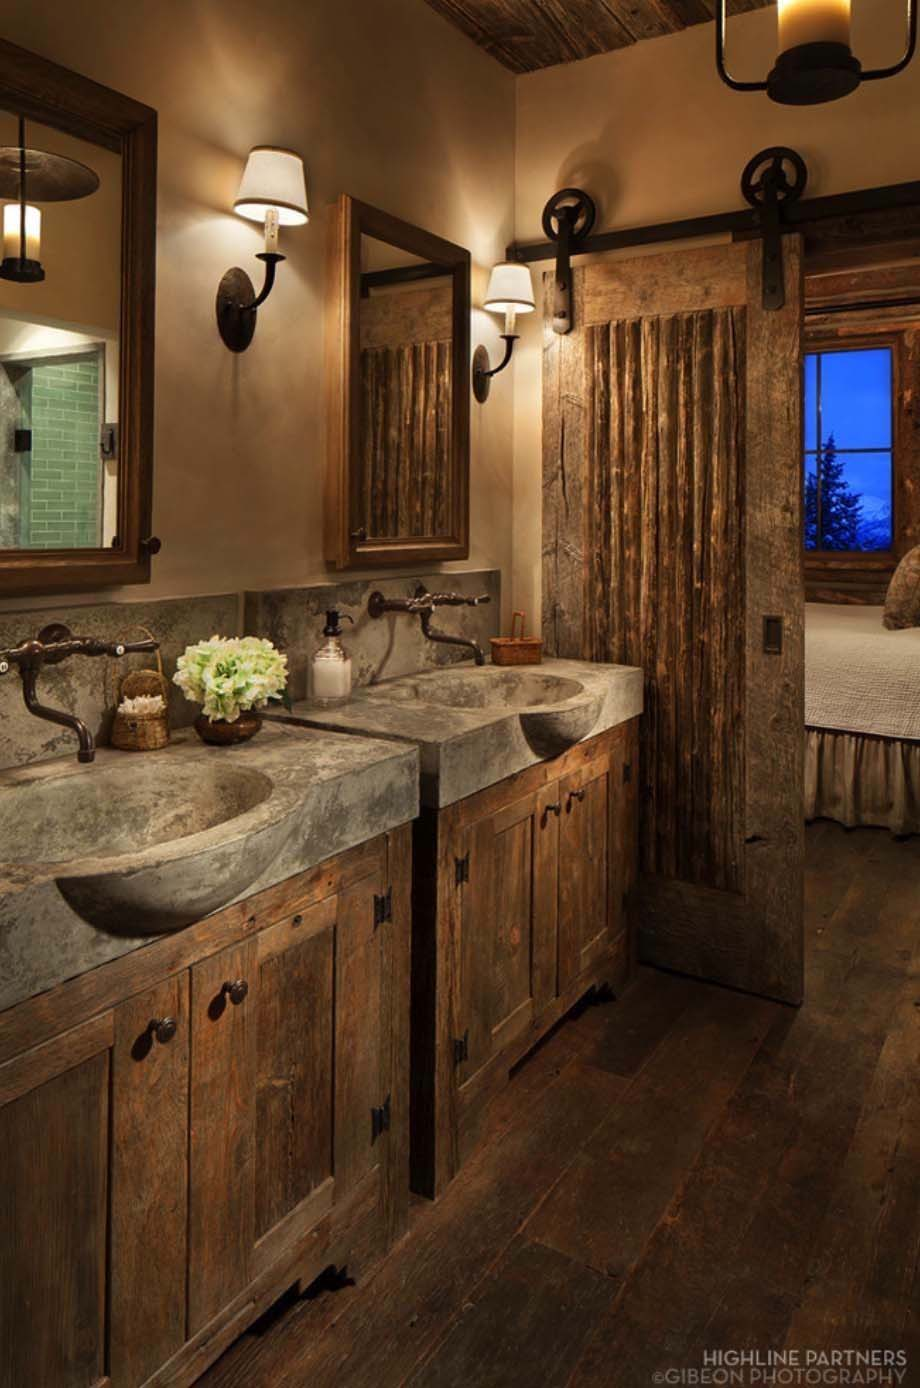 17 inspiring rustic bathroom decor ideas for cozy home for Home bathroom design ideas